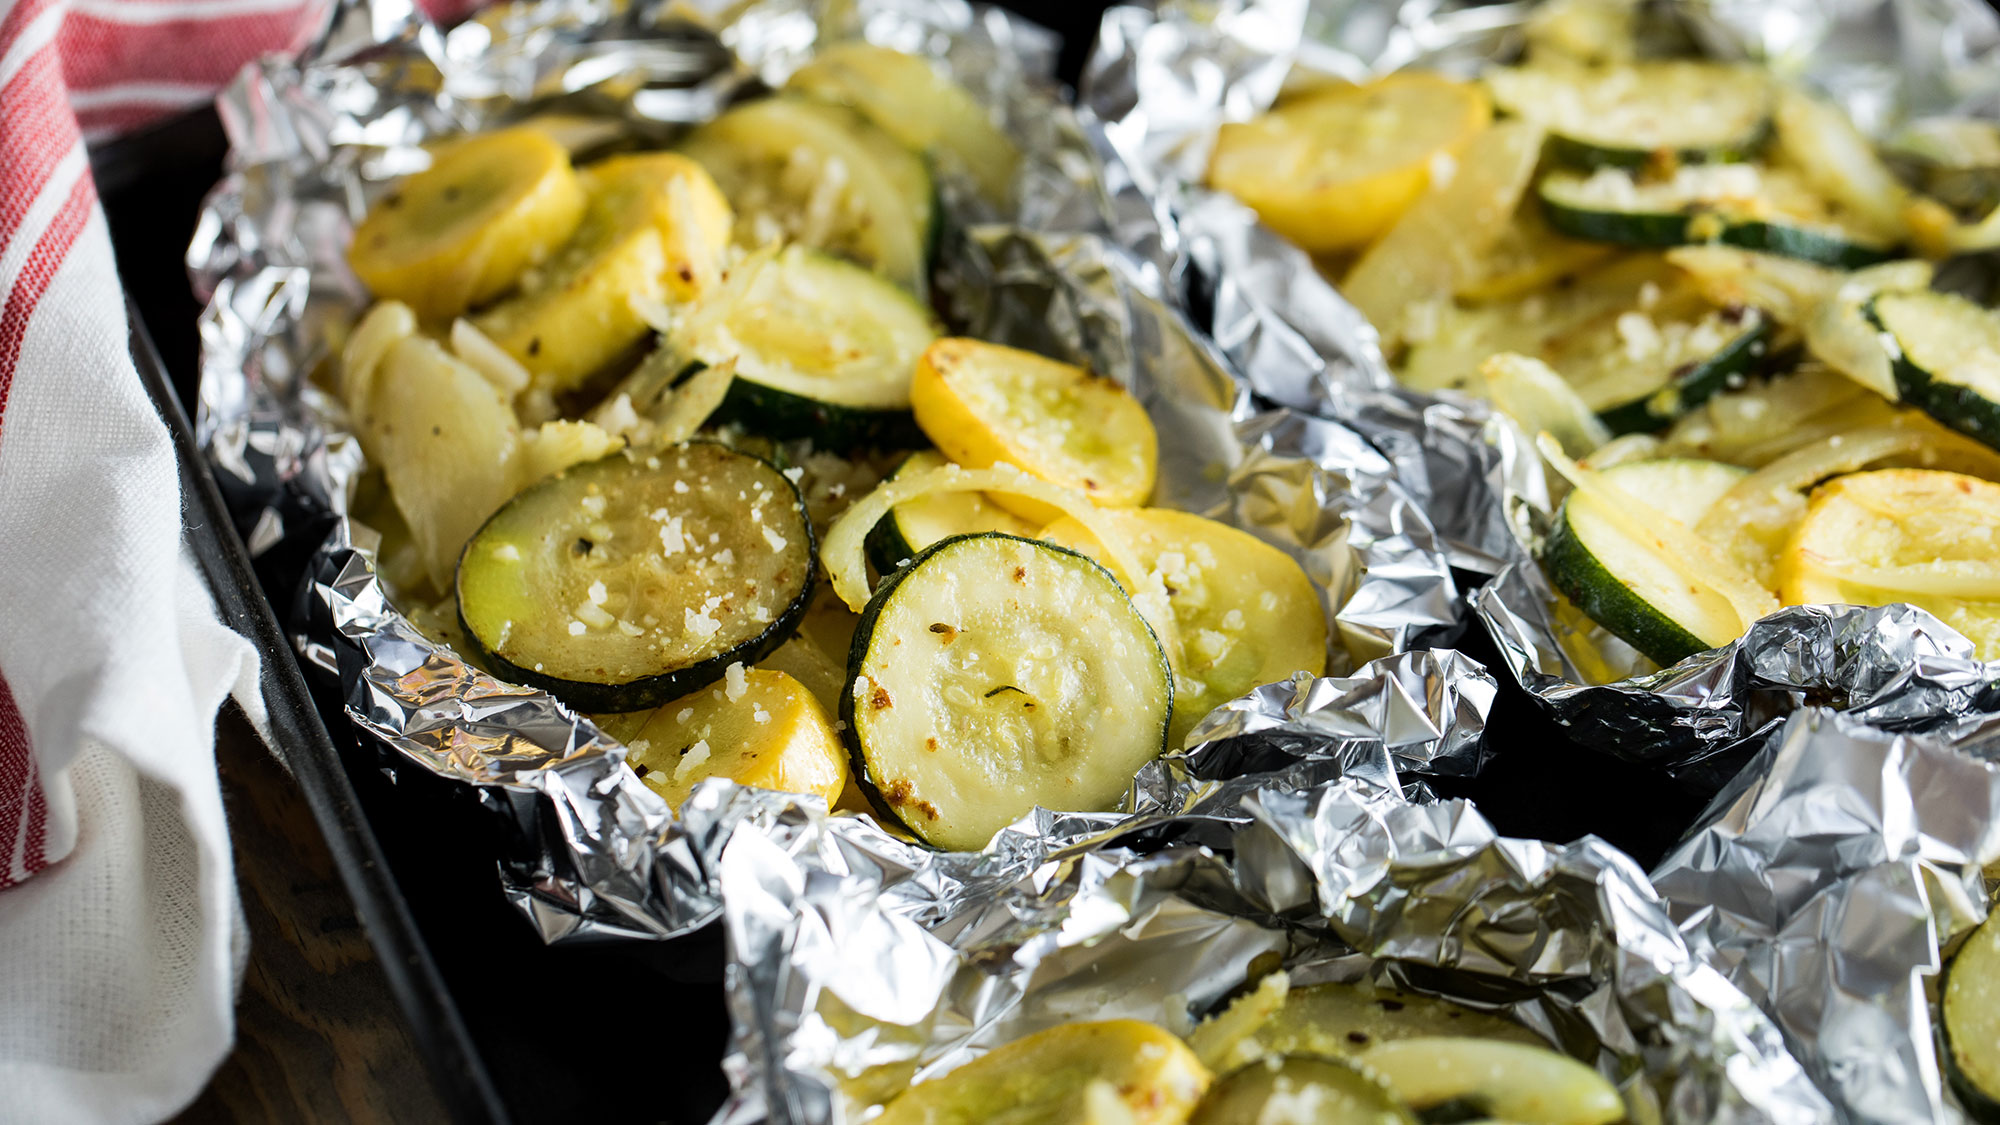 FRENCH's Easy Zucchini Foil Packets